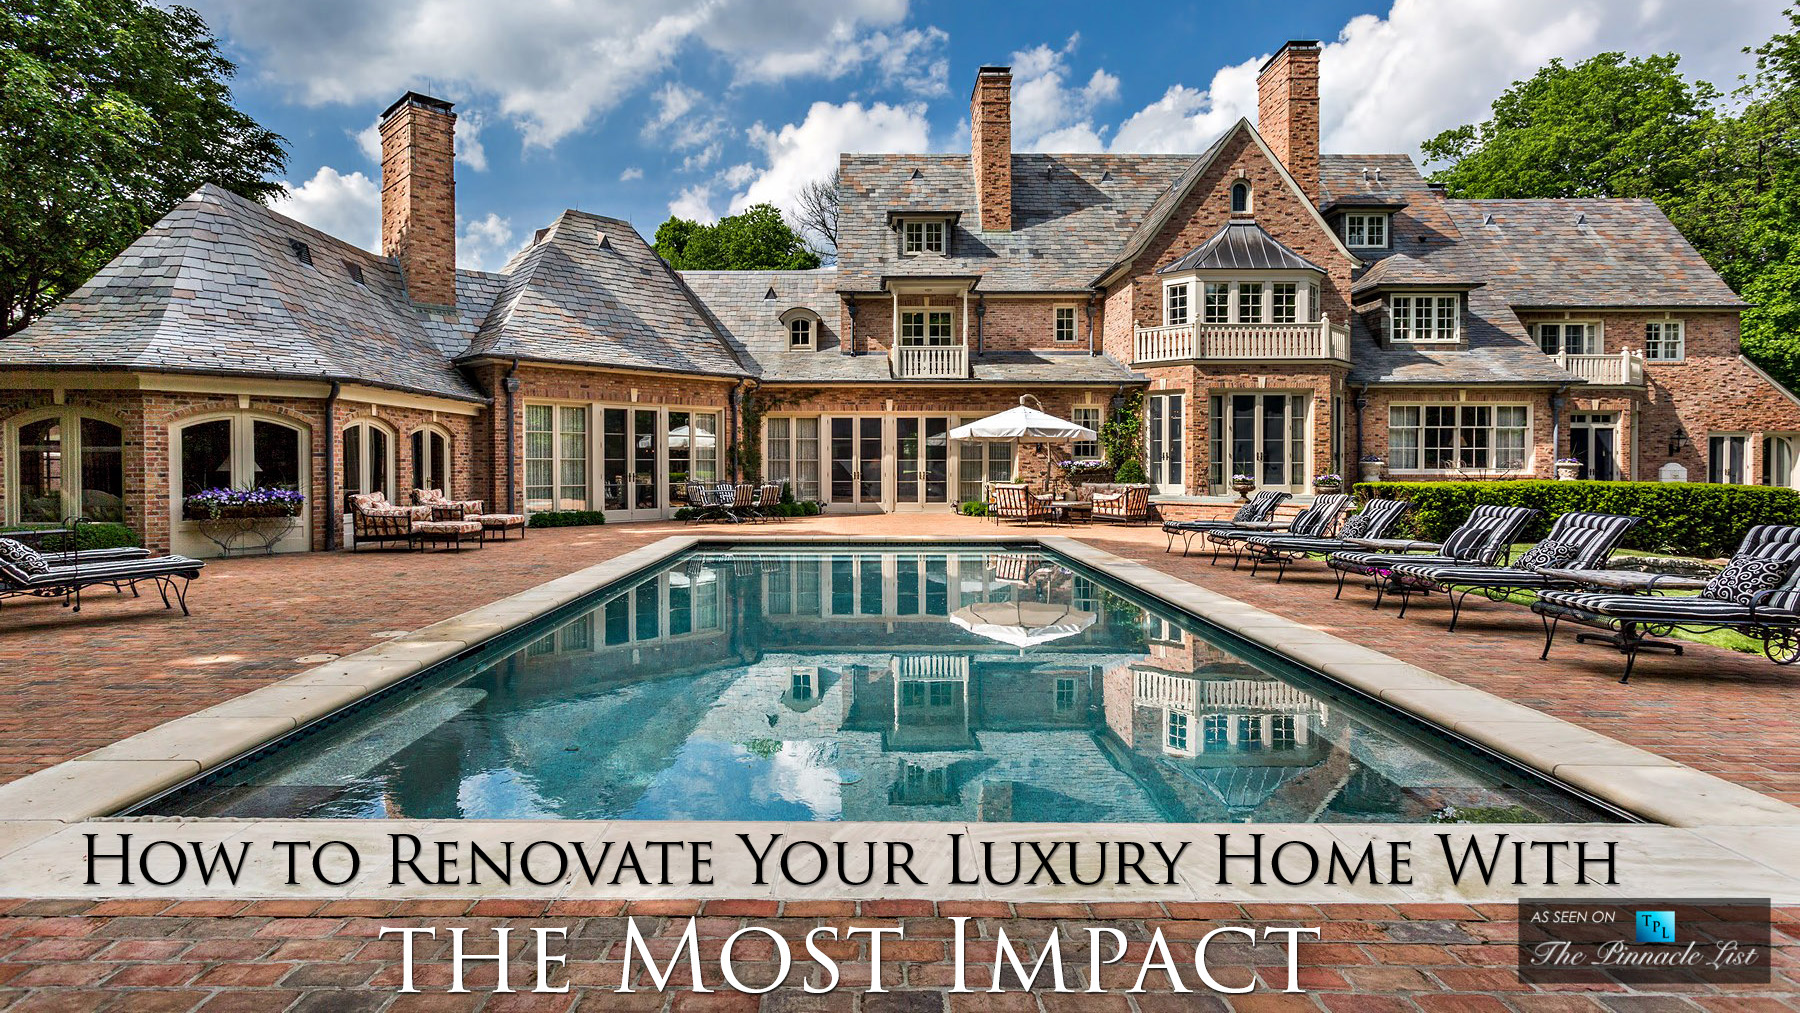 How to Renovate Your Luxury Home With the Most Impact